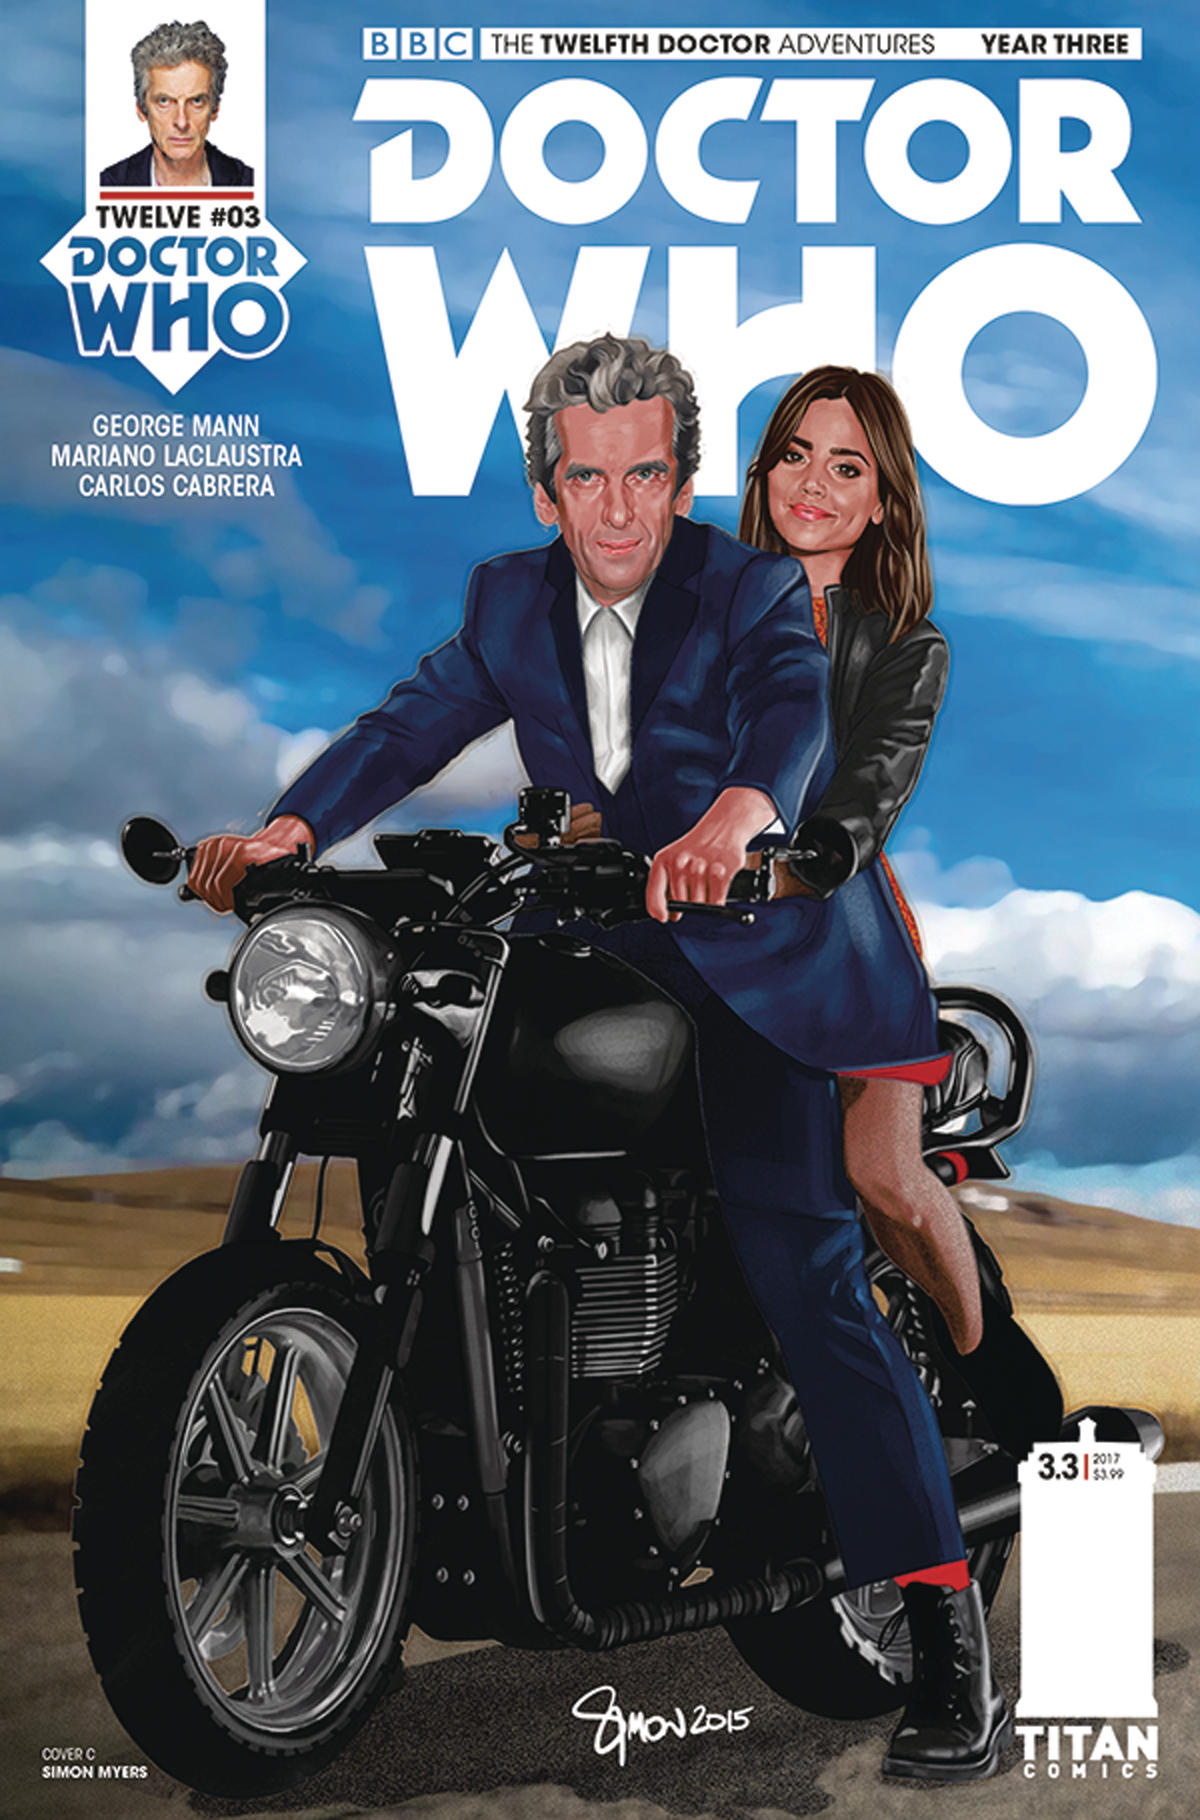 DOCTOR WHO 12TH YEAR THREE #3 CVR C MYERS